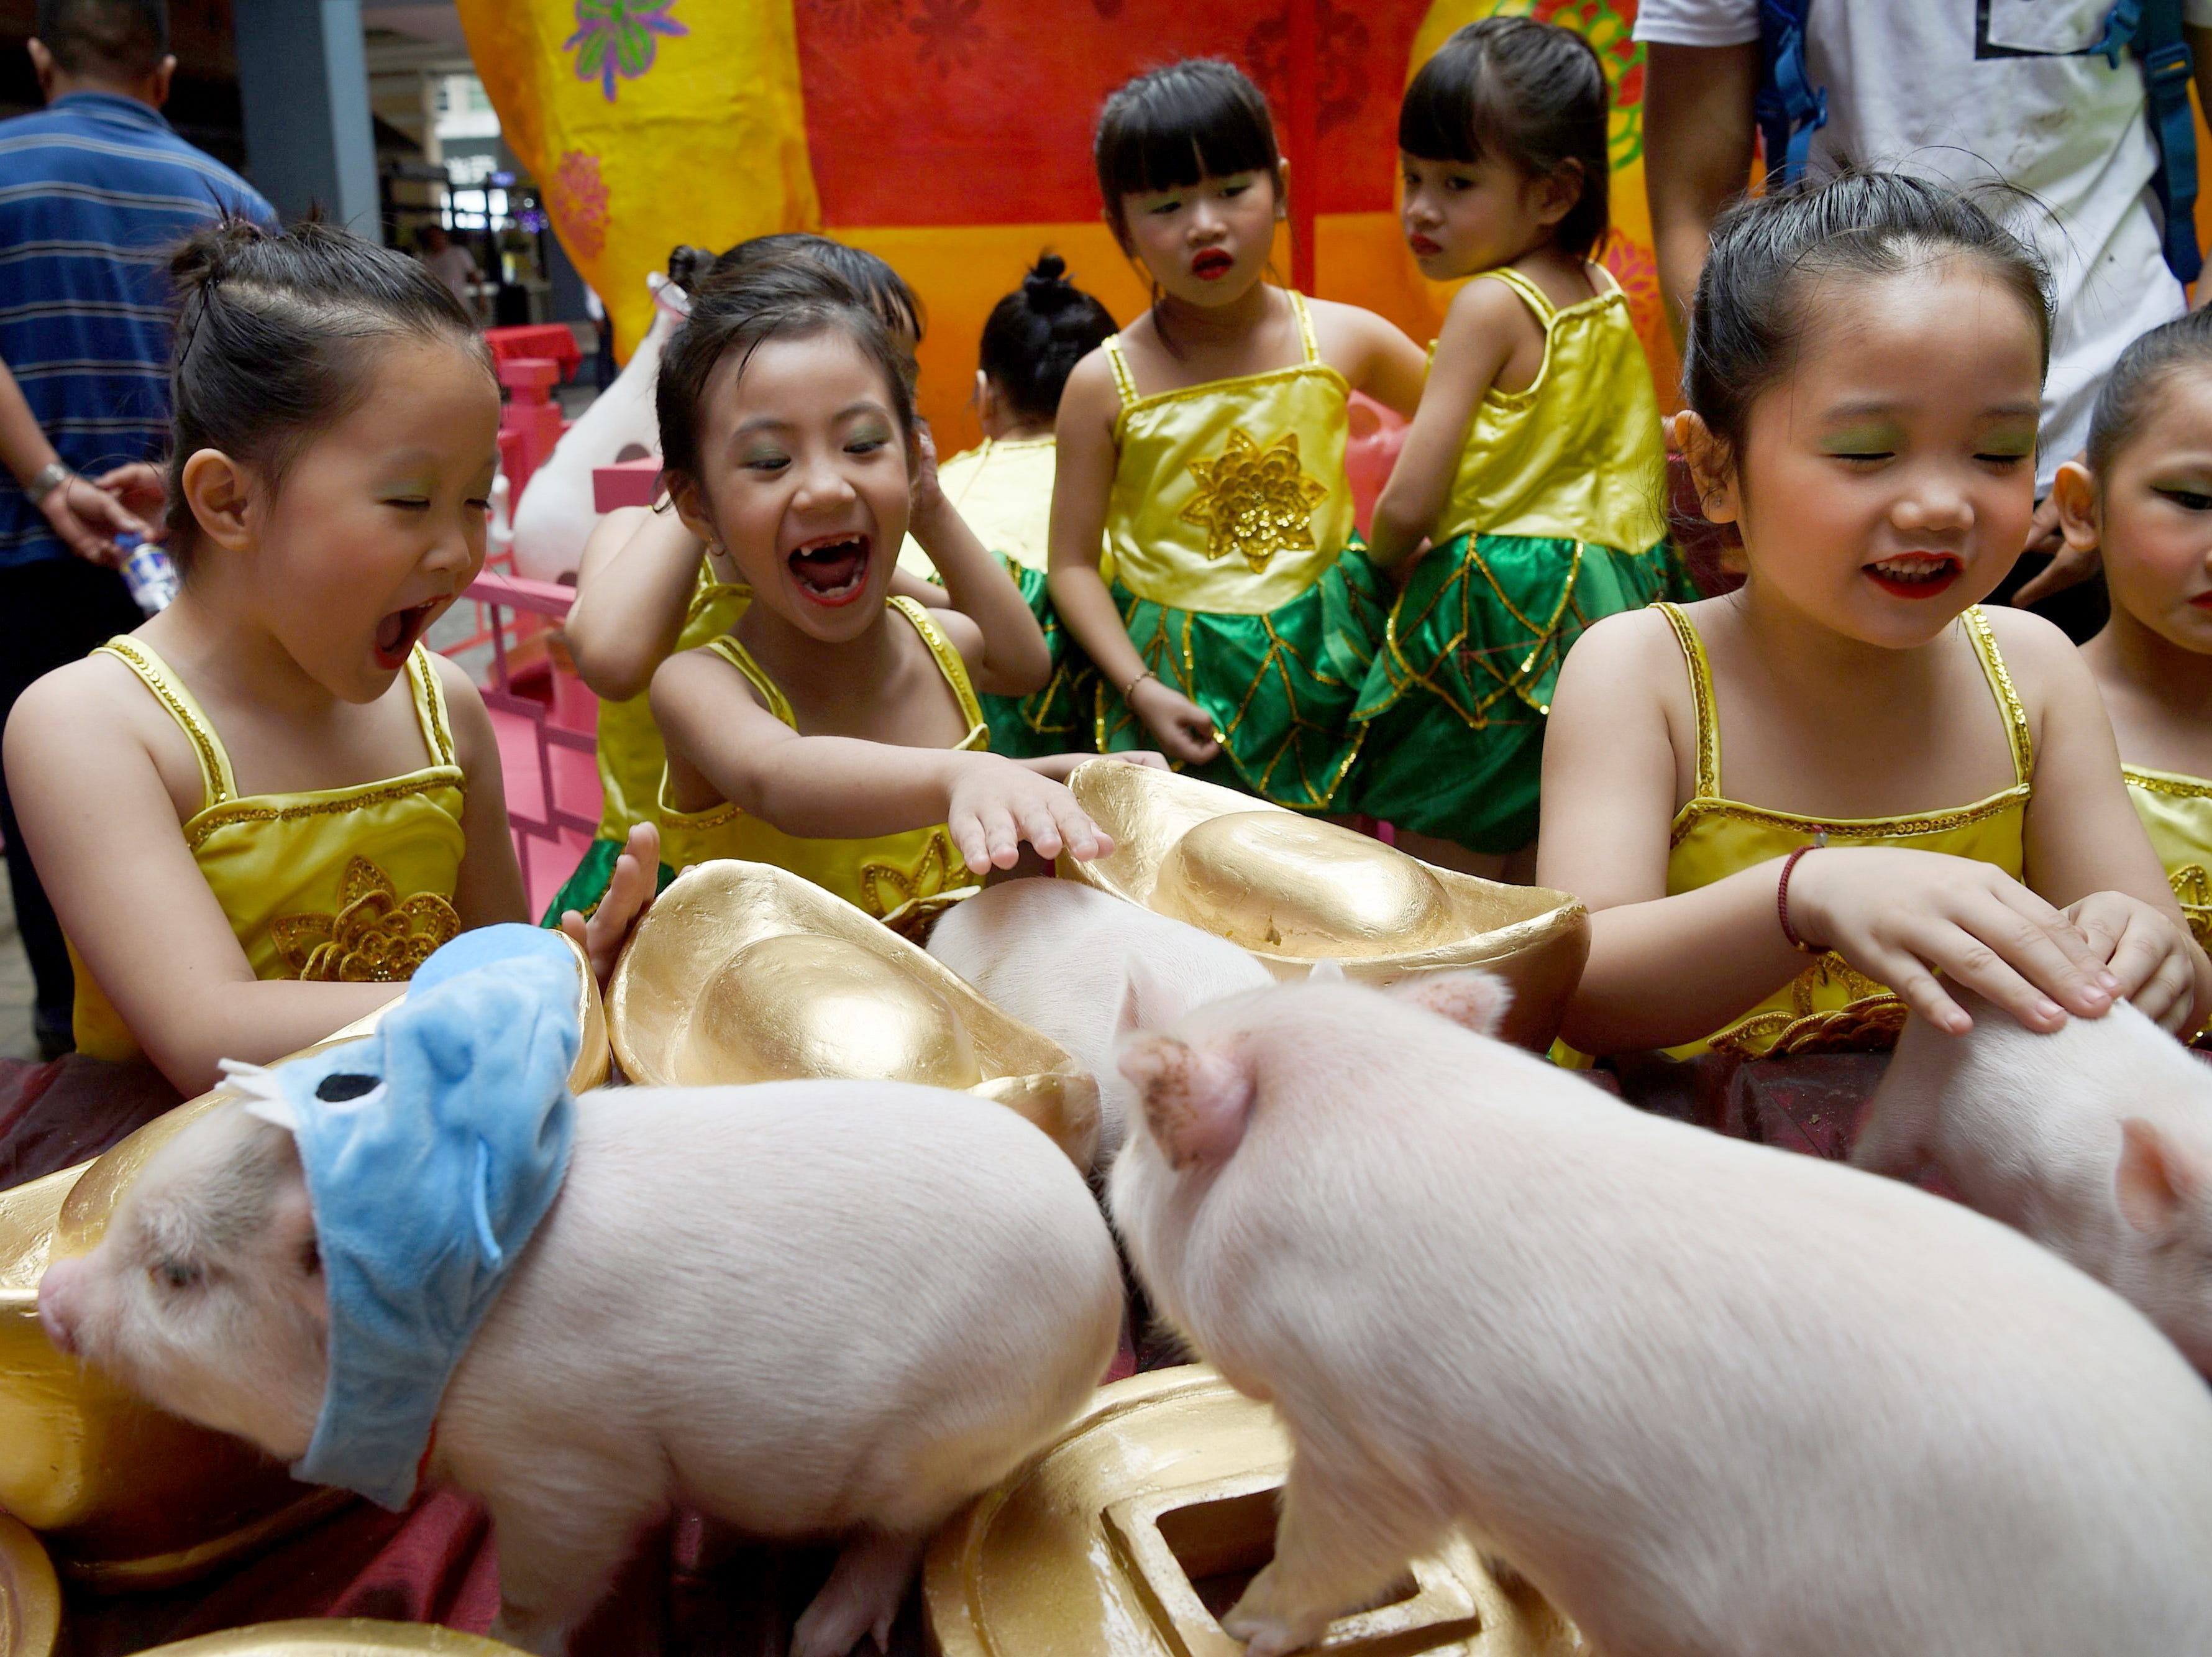 Children touch piglets during a ceremony as part of celebrations ahead of the Chinese Lunar New Year of the Pig at a mall in Chinatown district of Manila on February 1, 2019.